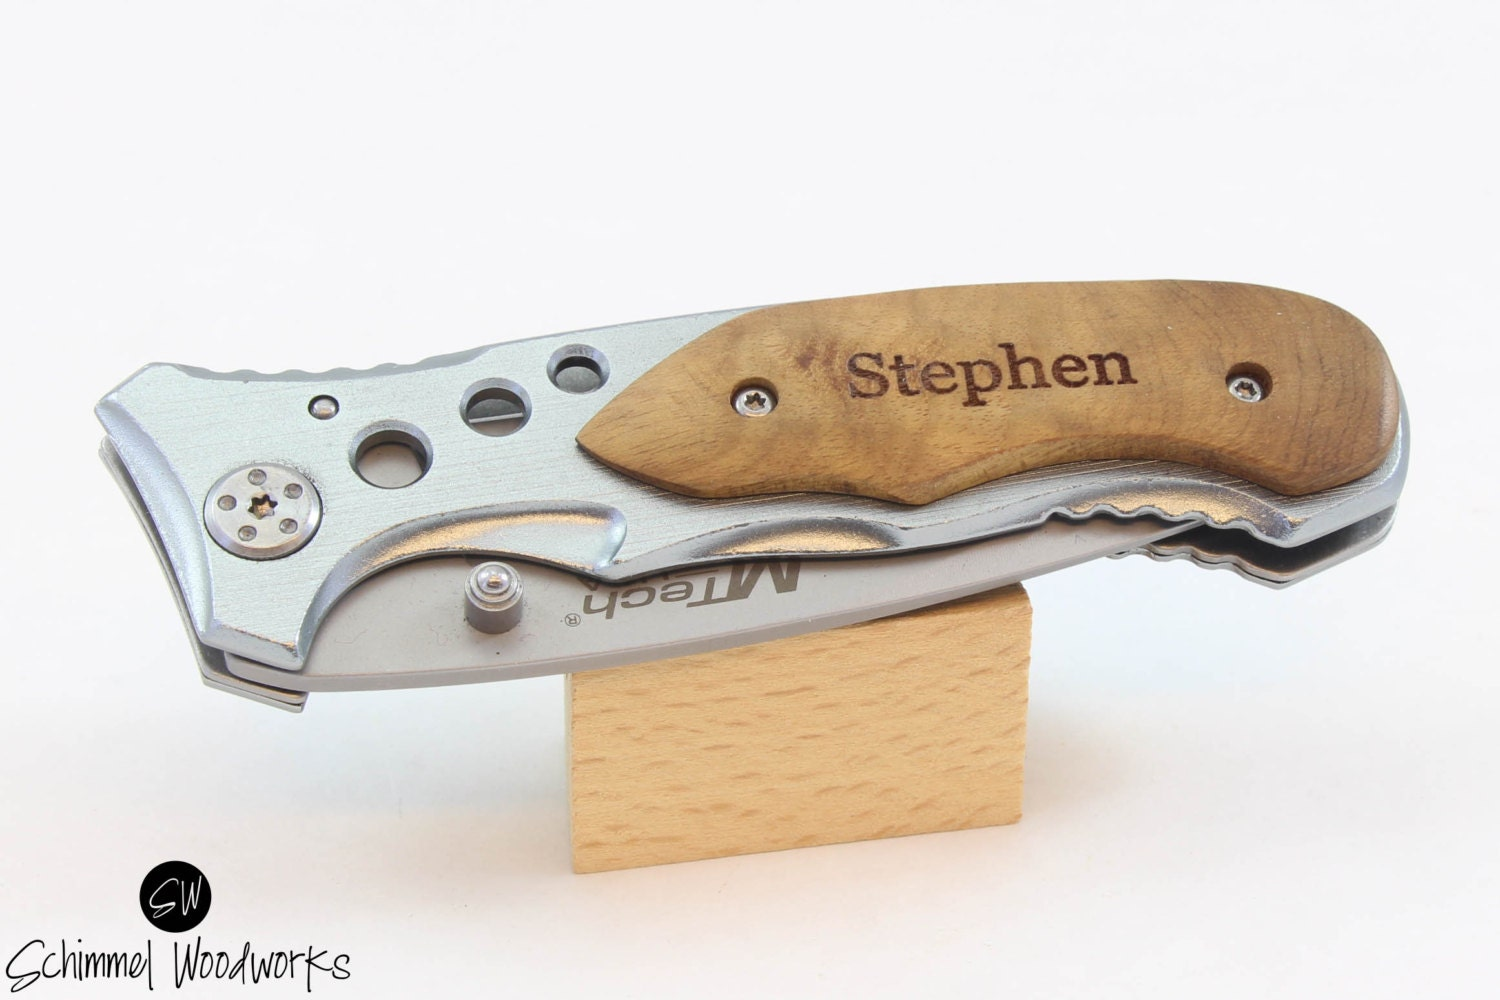 Knives For Wedding Gift : Groomsmen gift Personalized Engraved Knife for wedding gift!